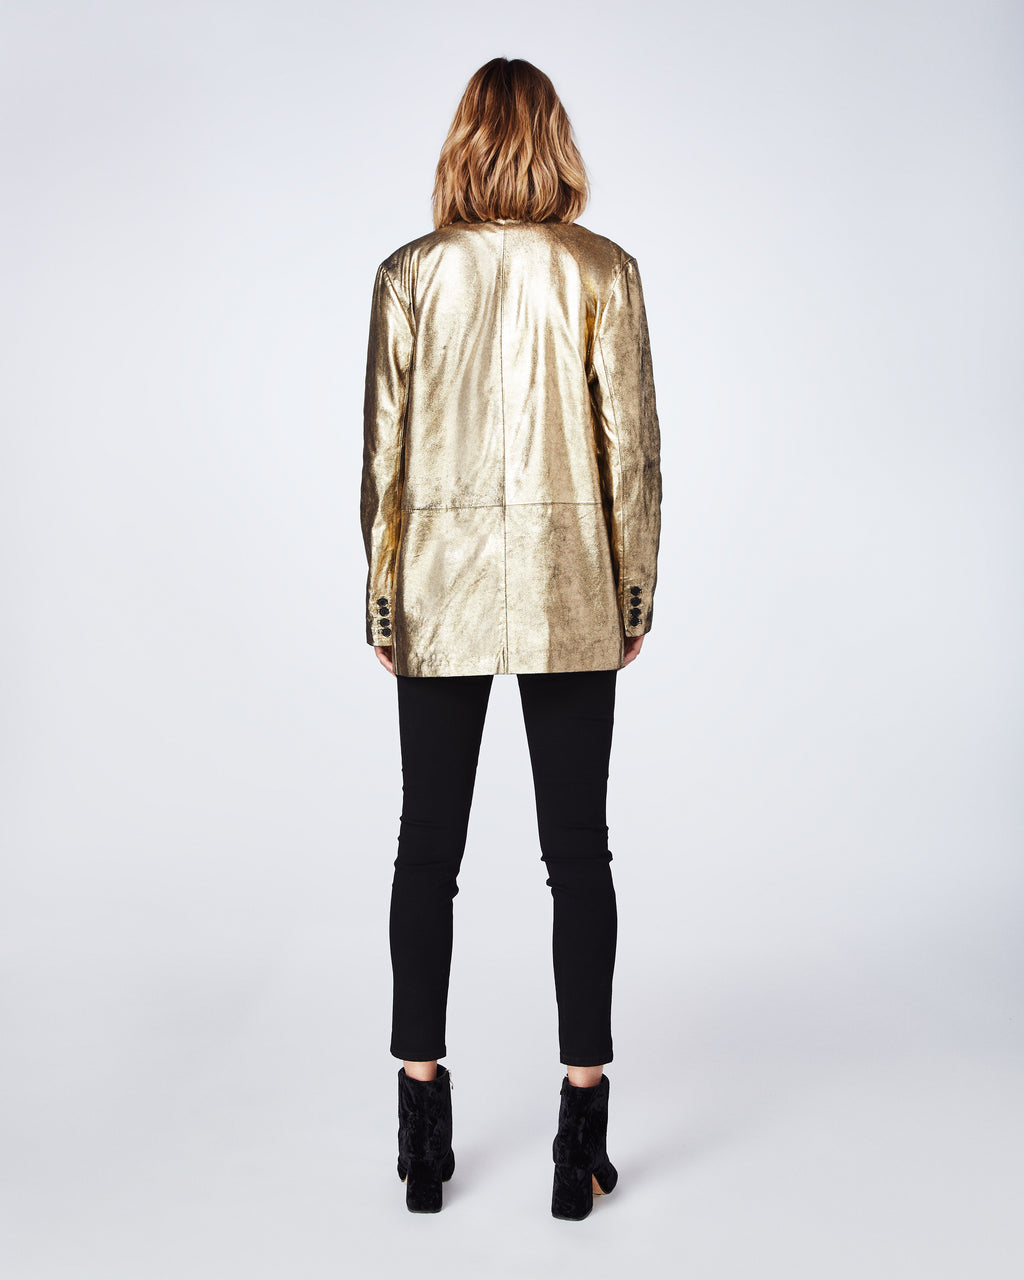 CM10045 - DISTRESSED LEATHER BOYFRIEND JACKET - outerwear - jackets - Made with 100% lamb leather, this flashy gold jacket is meant to be worn oversized.